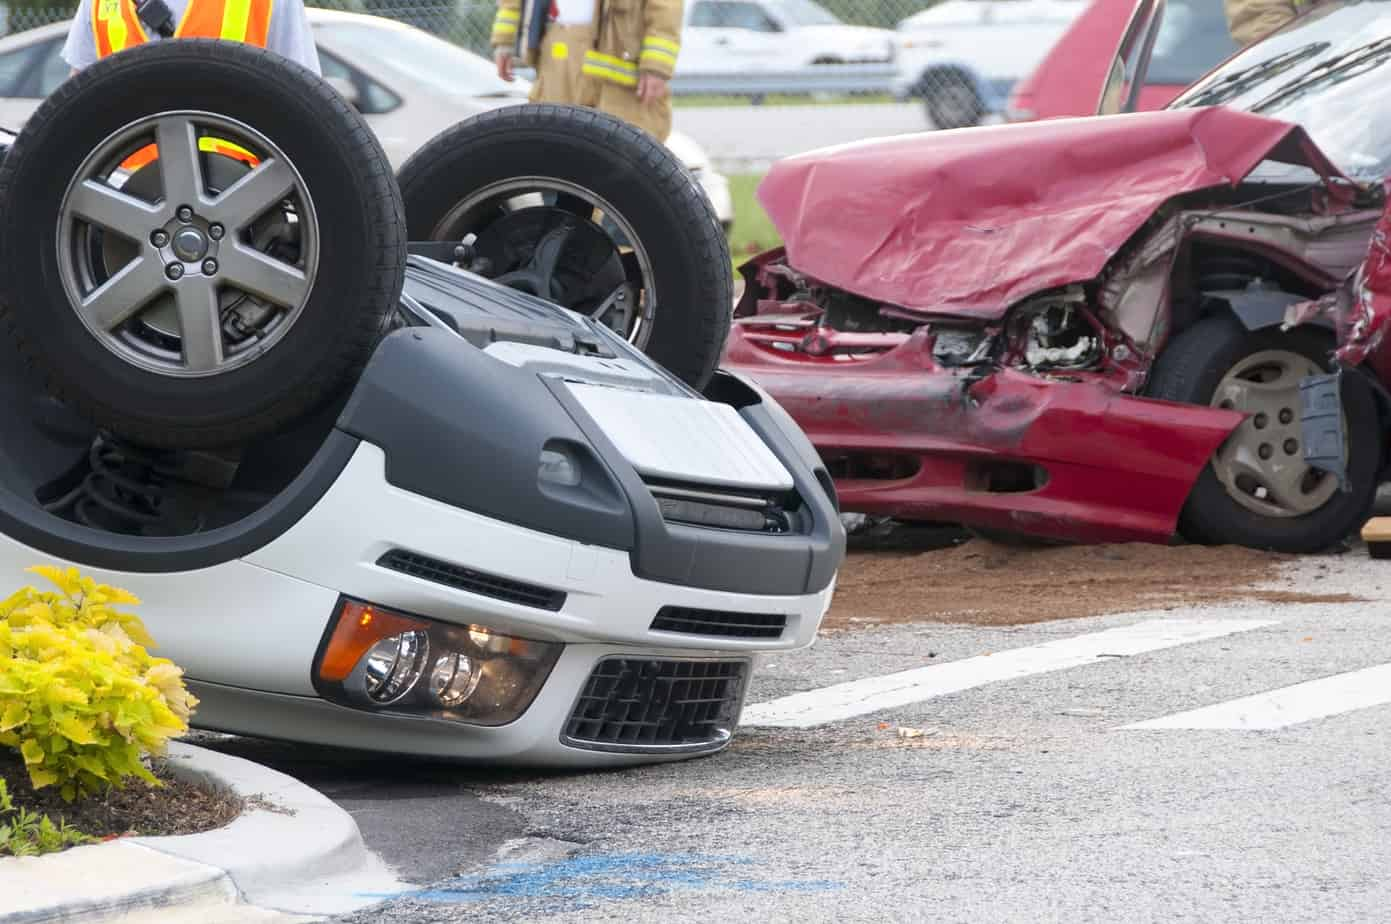 Personal injury attorneys in macon ga represent distracted driver victims powers law group Motor vehicle injuries